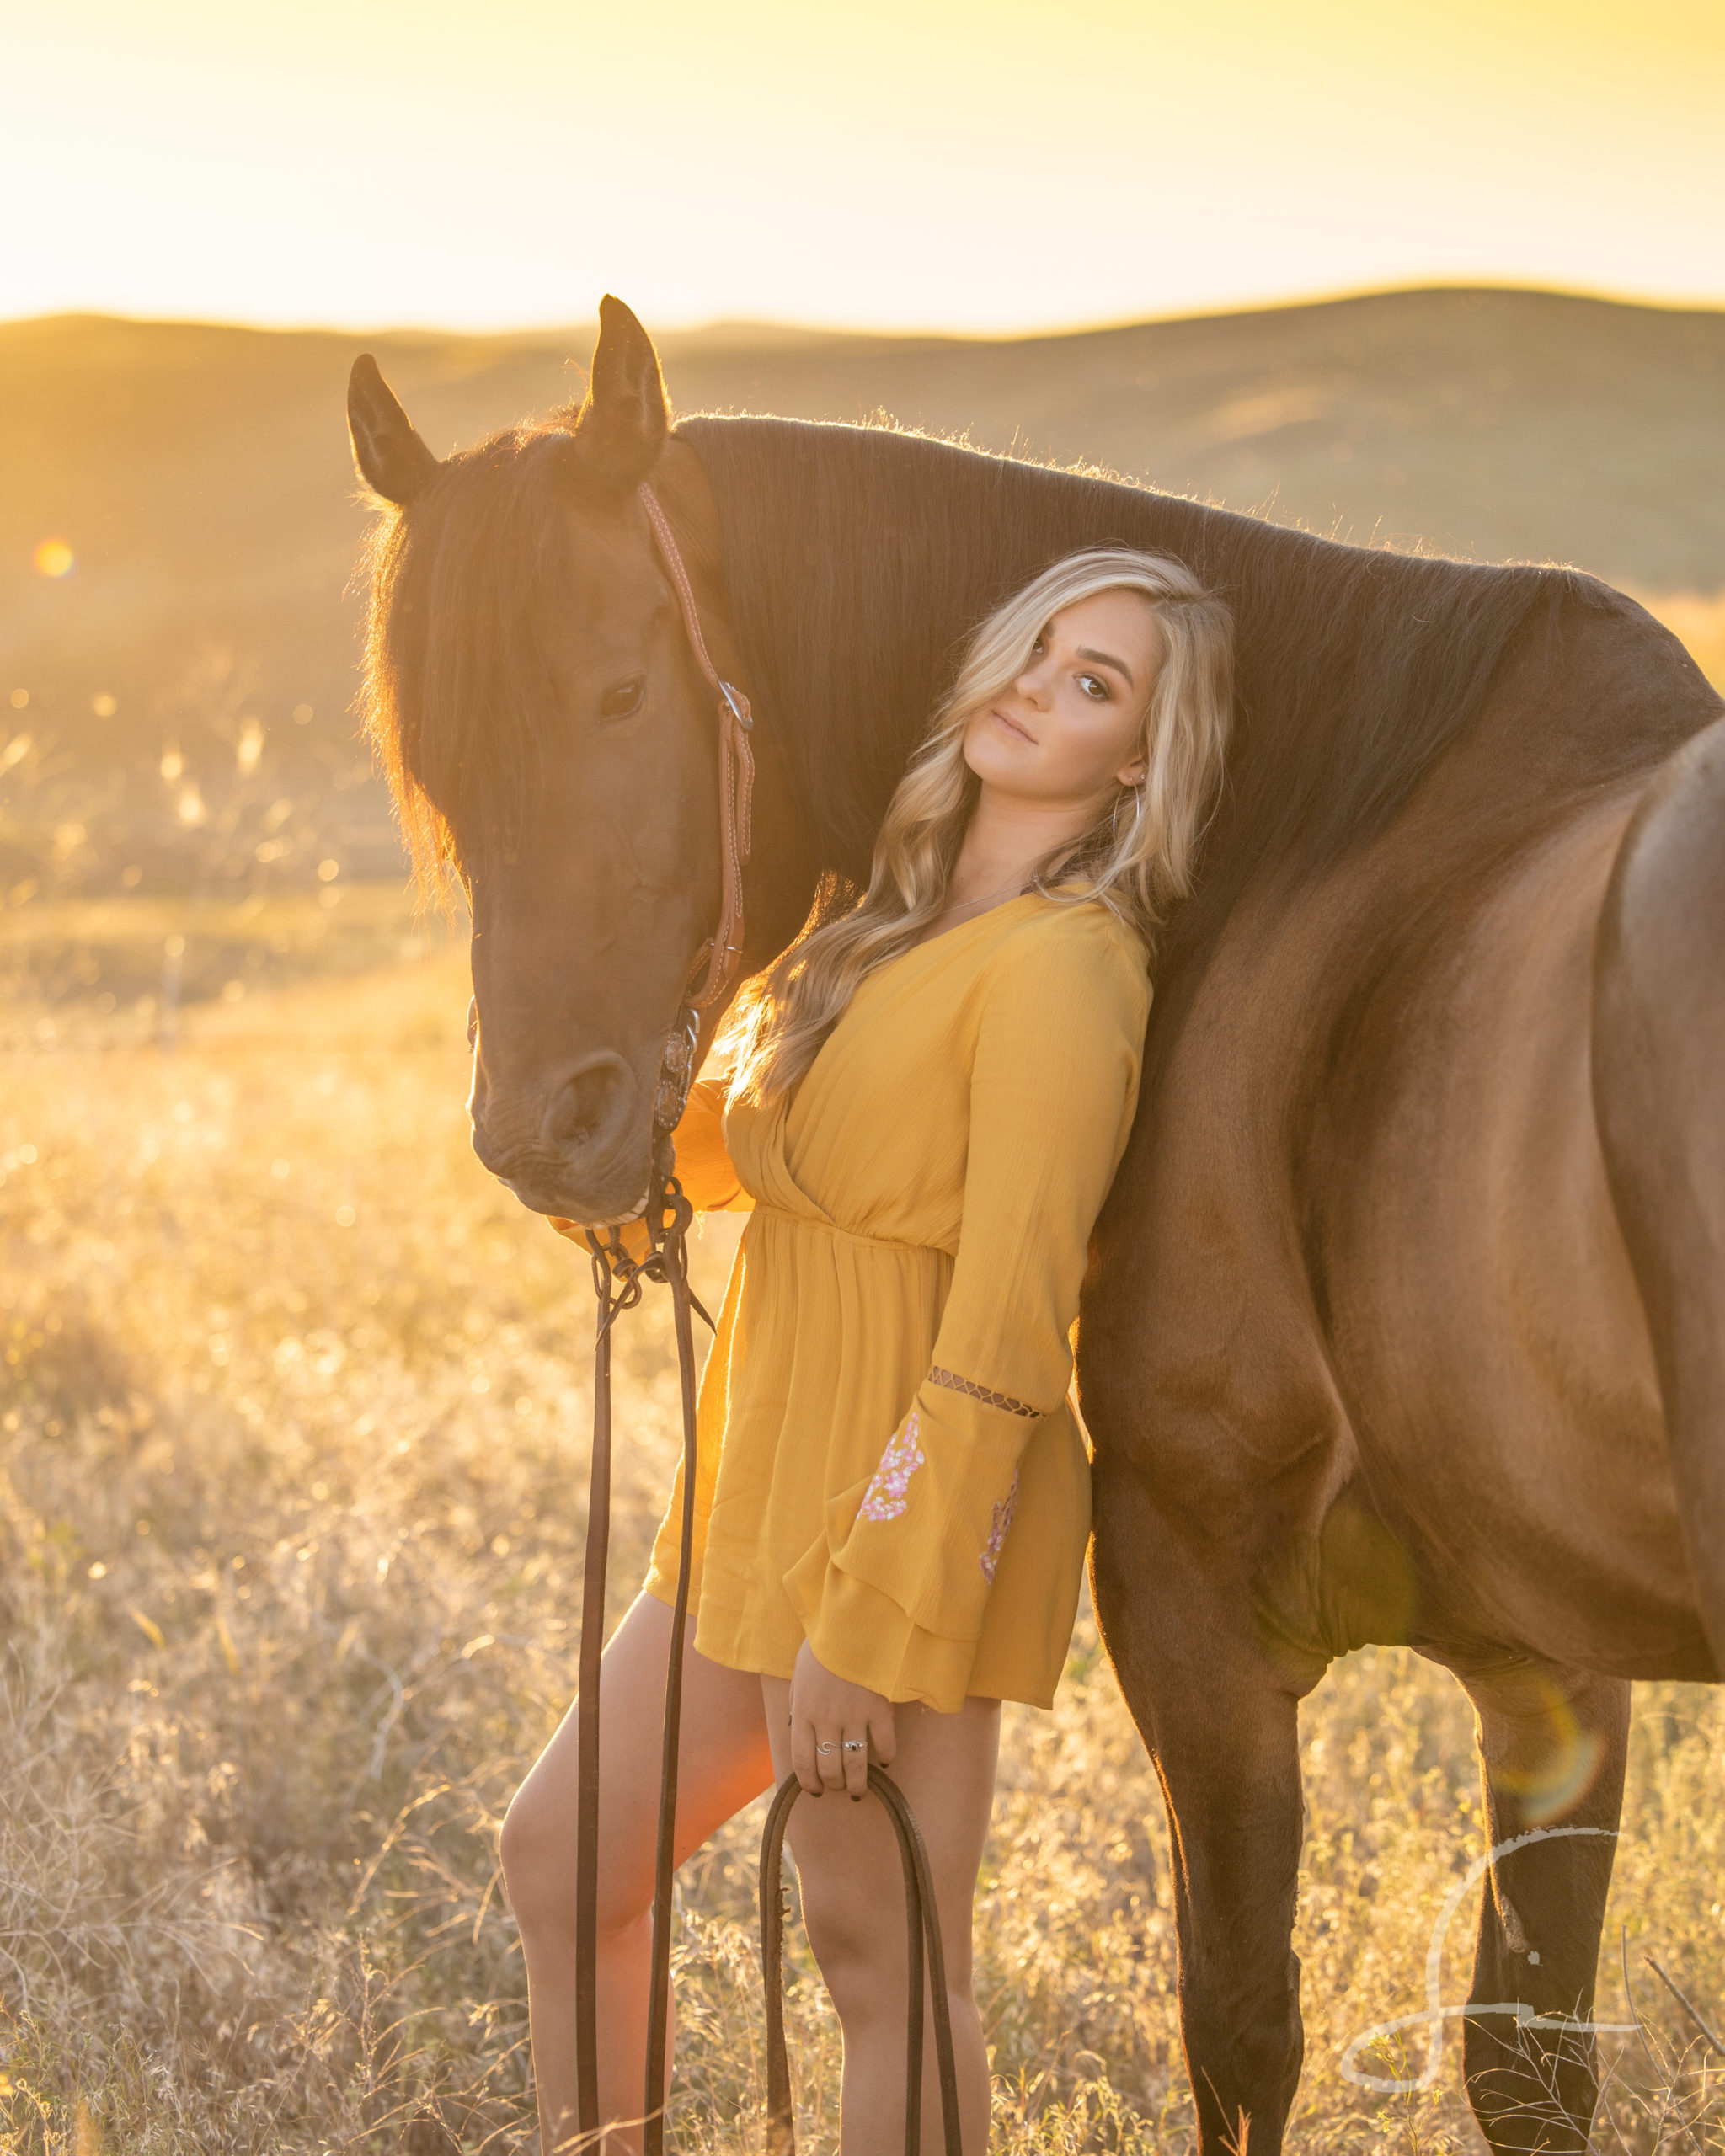 high school senior girl in a mustard romper with her horse in a field at sunset